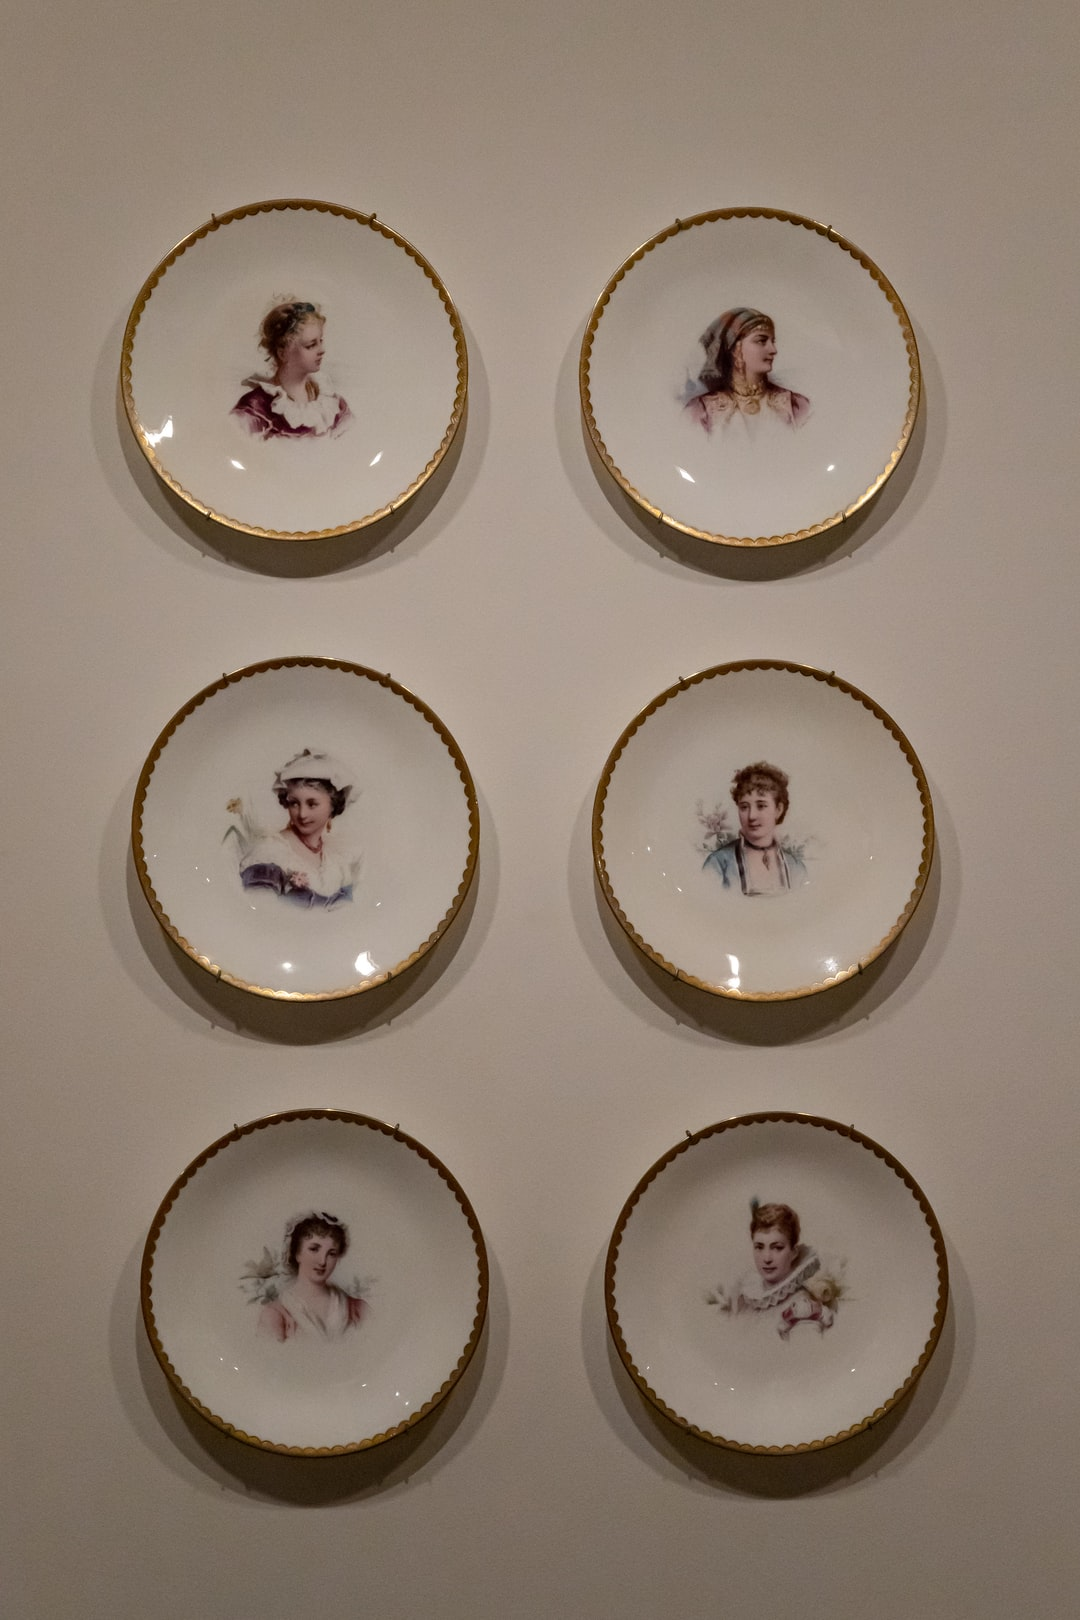 National Gallery Victoria: Plates